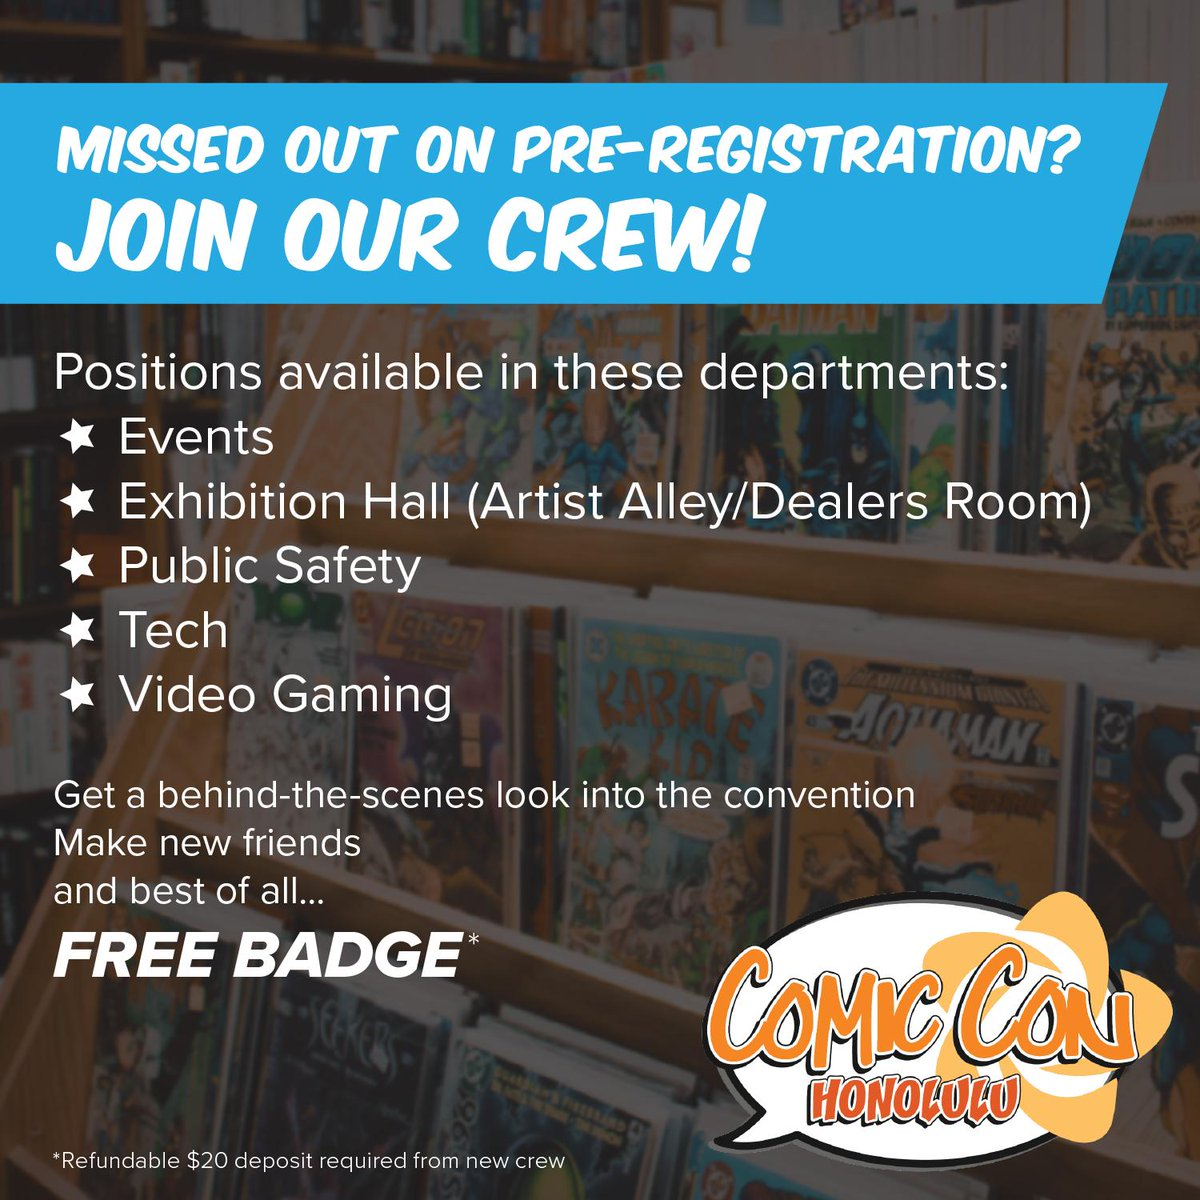 Comic Con Honolulu is still accepting volunteers for the 2019 convention! Tag a friend who might be interested before the application closes on 7/26!  https://t.co/0hnjDRJHvx https://t.co/jTmrzrROQA